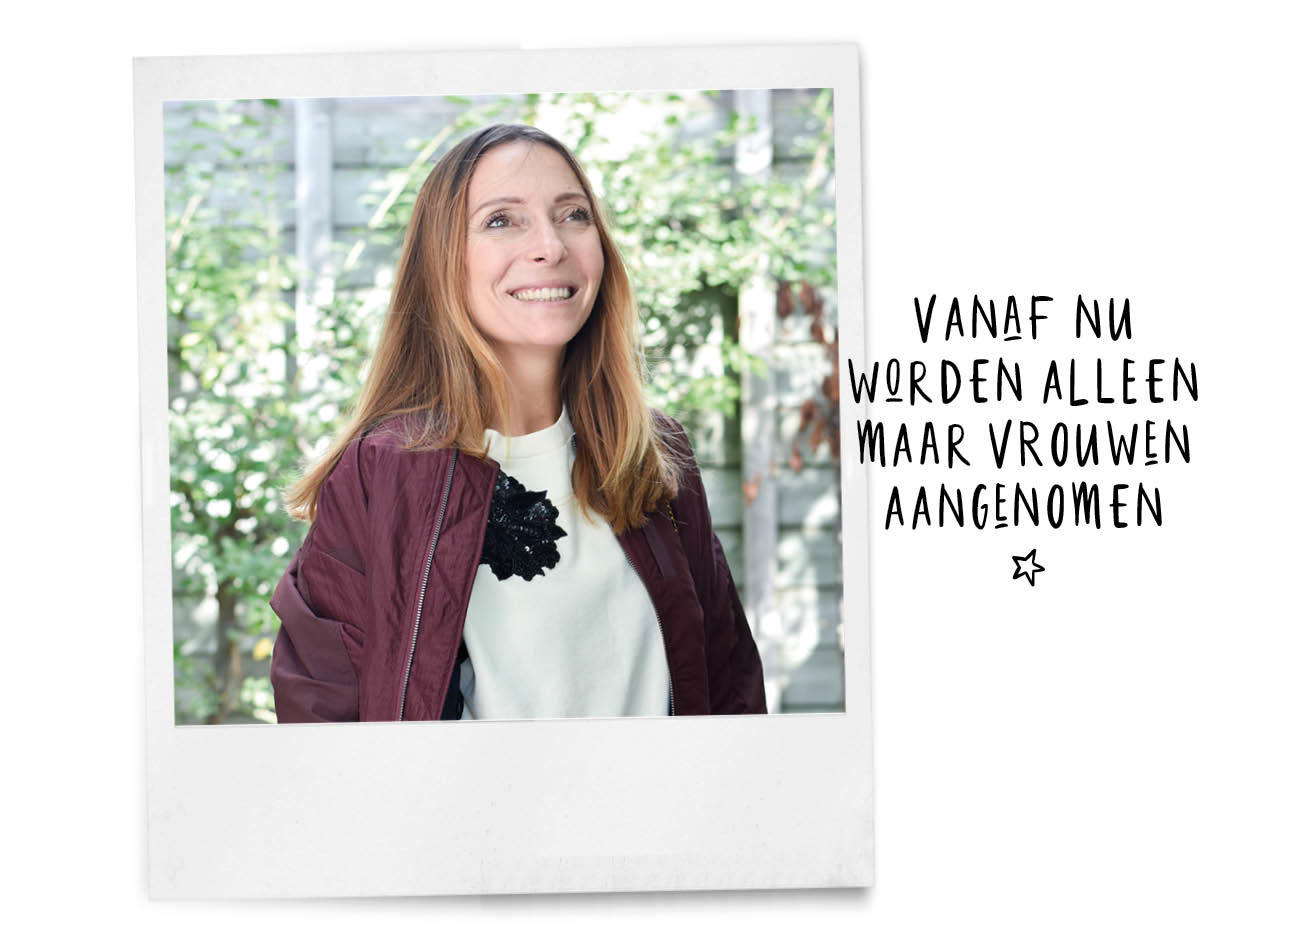 may-britt lachend buiten in de look of the day met outfit aan van pauw amsterdam